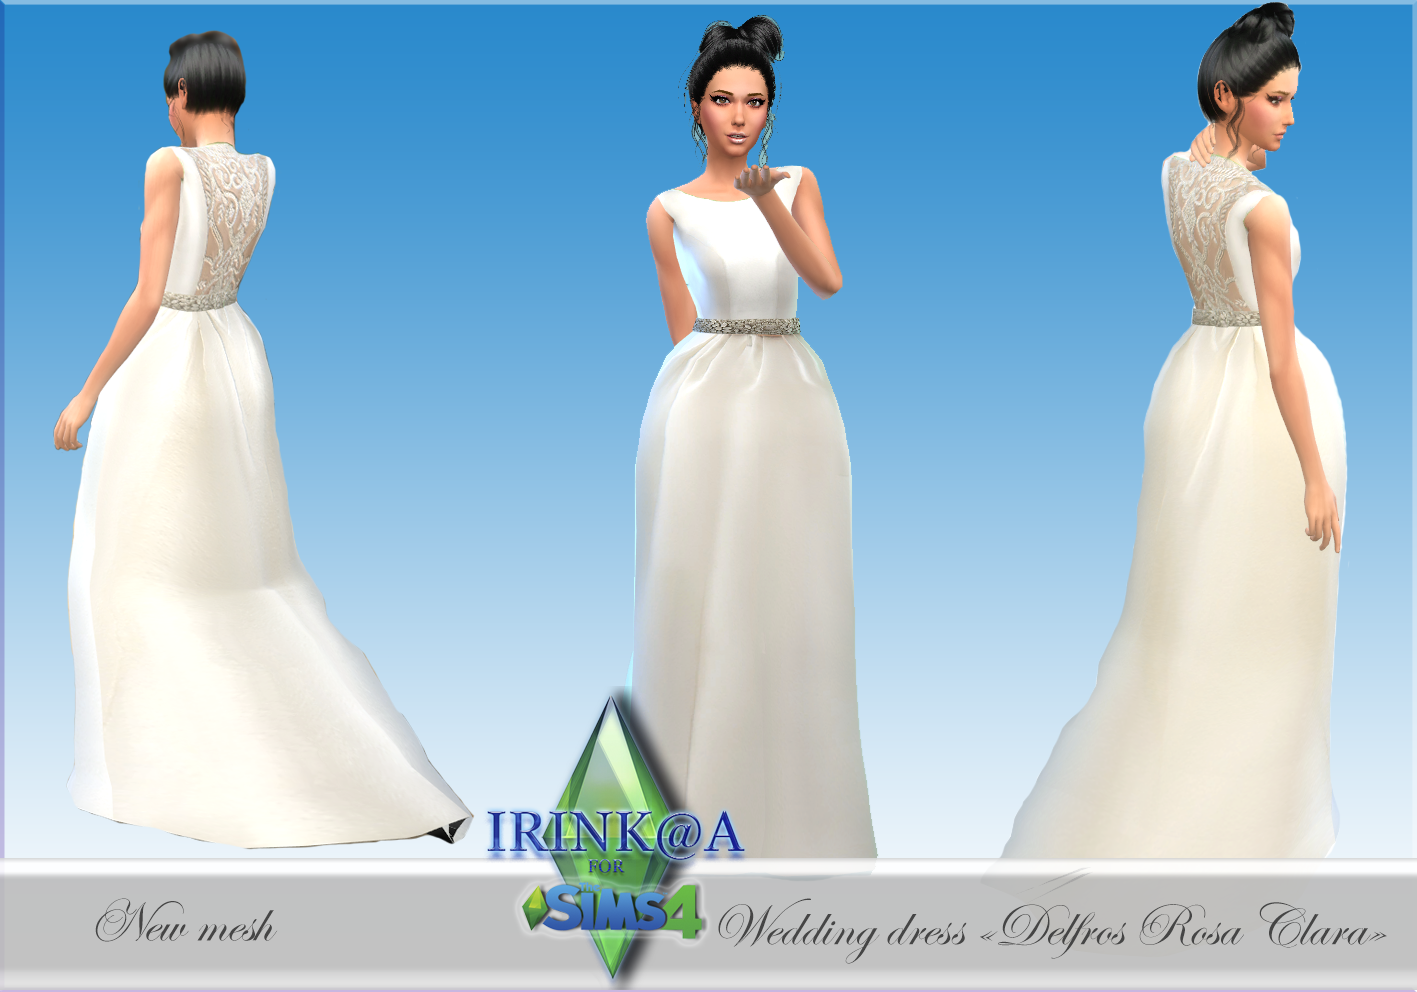 Wedding Dress by Irink@a